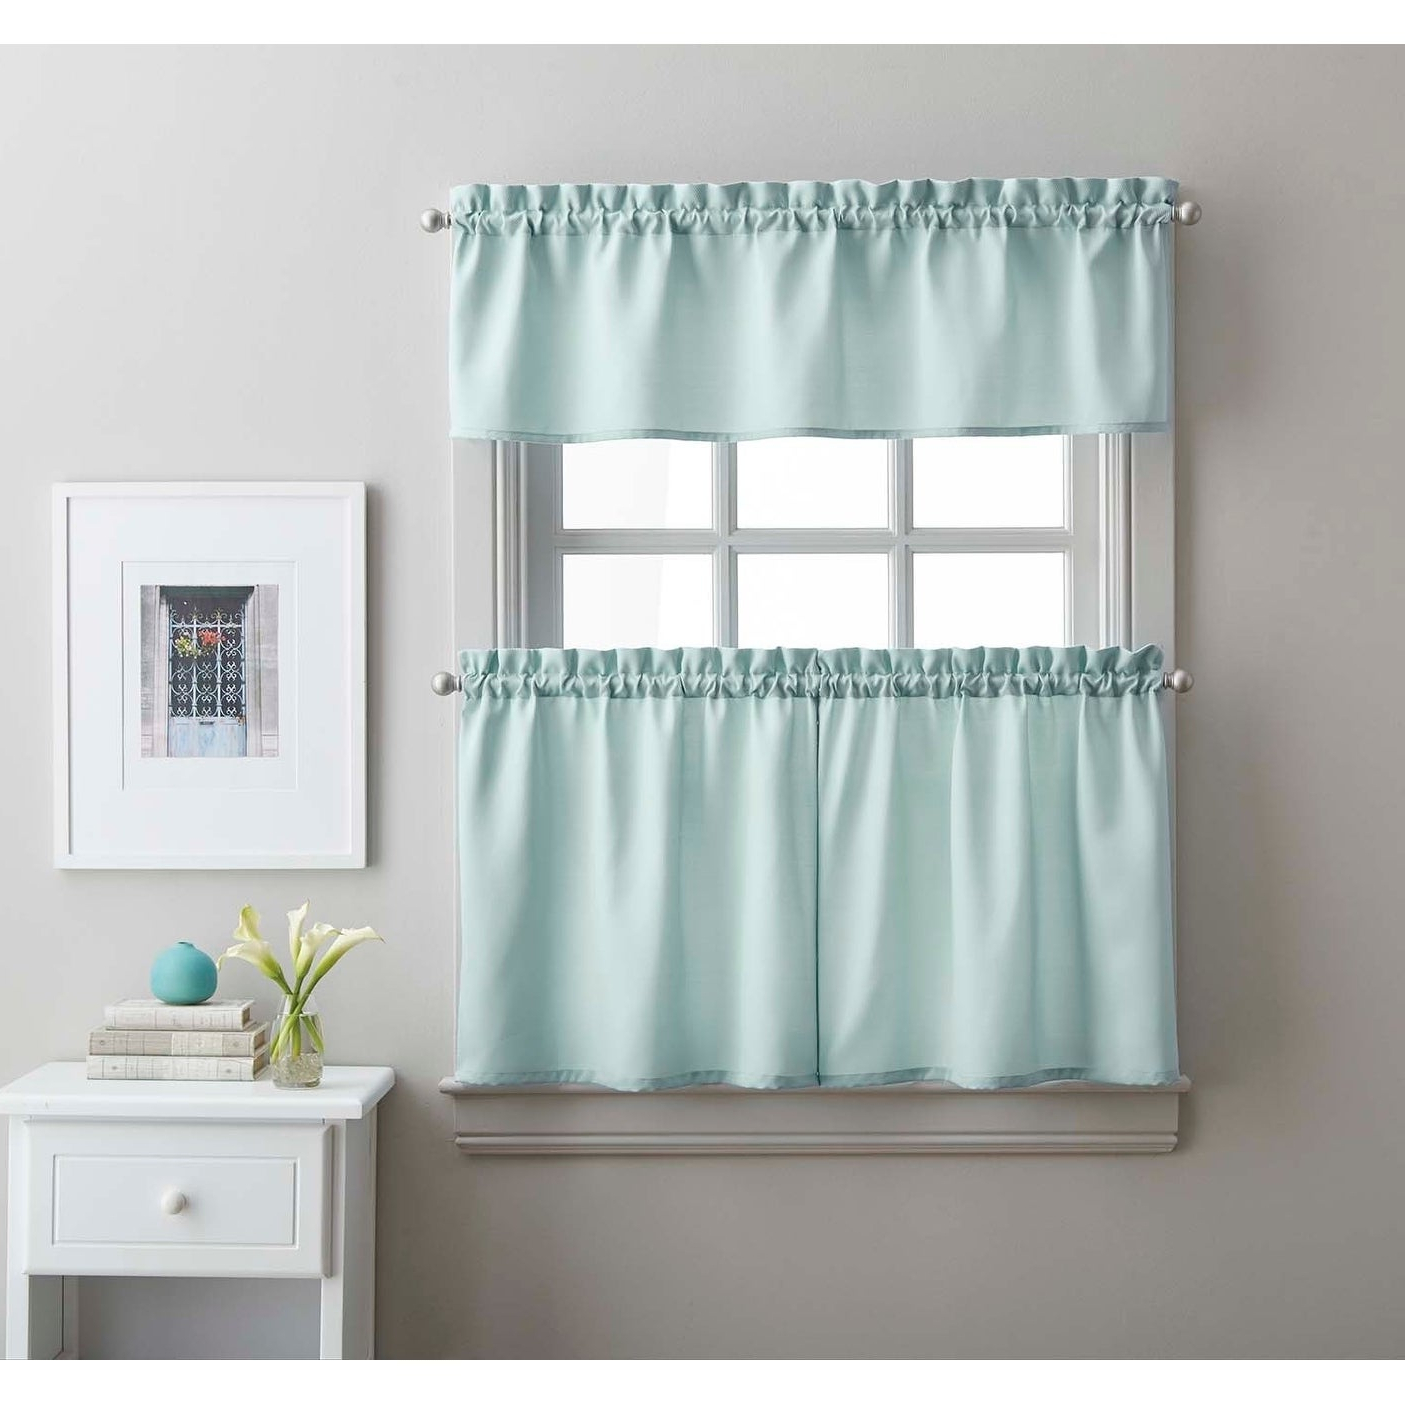 Twill 3 Piece Kitchen Curtain Tier Set In Preferred Solid Microfiber 3 Piece Kitchen Curtain Valance And Tiers Sets (View 3 of 20)